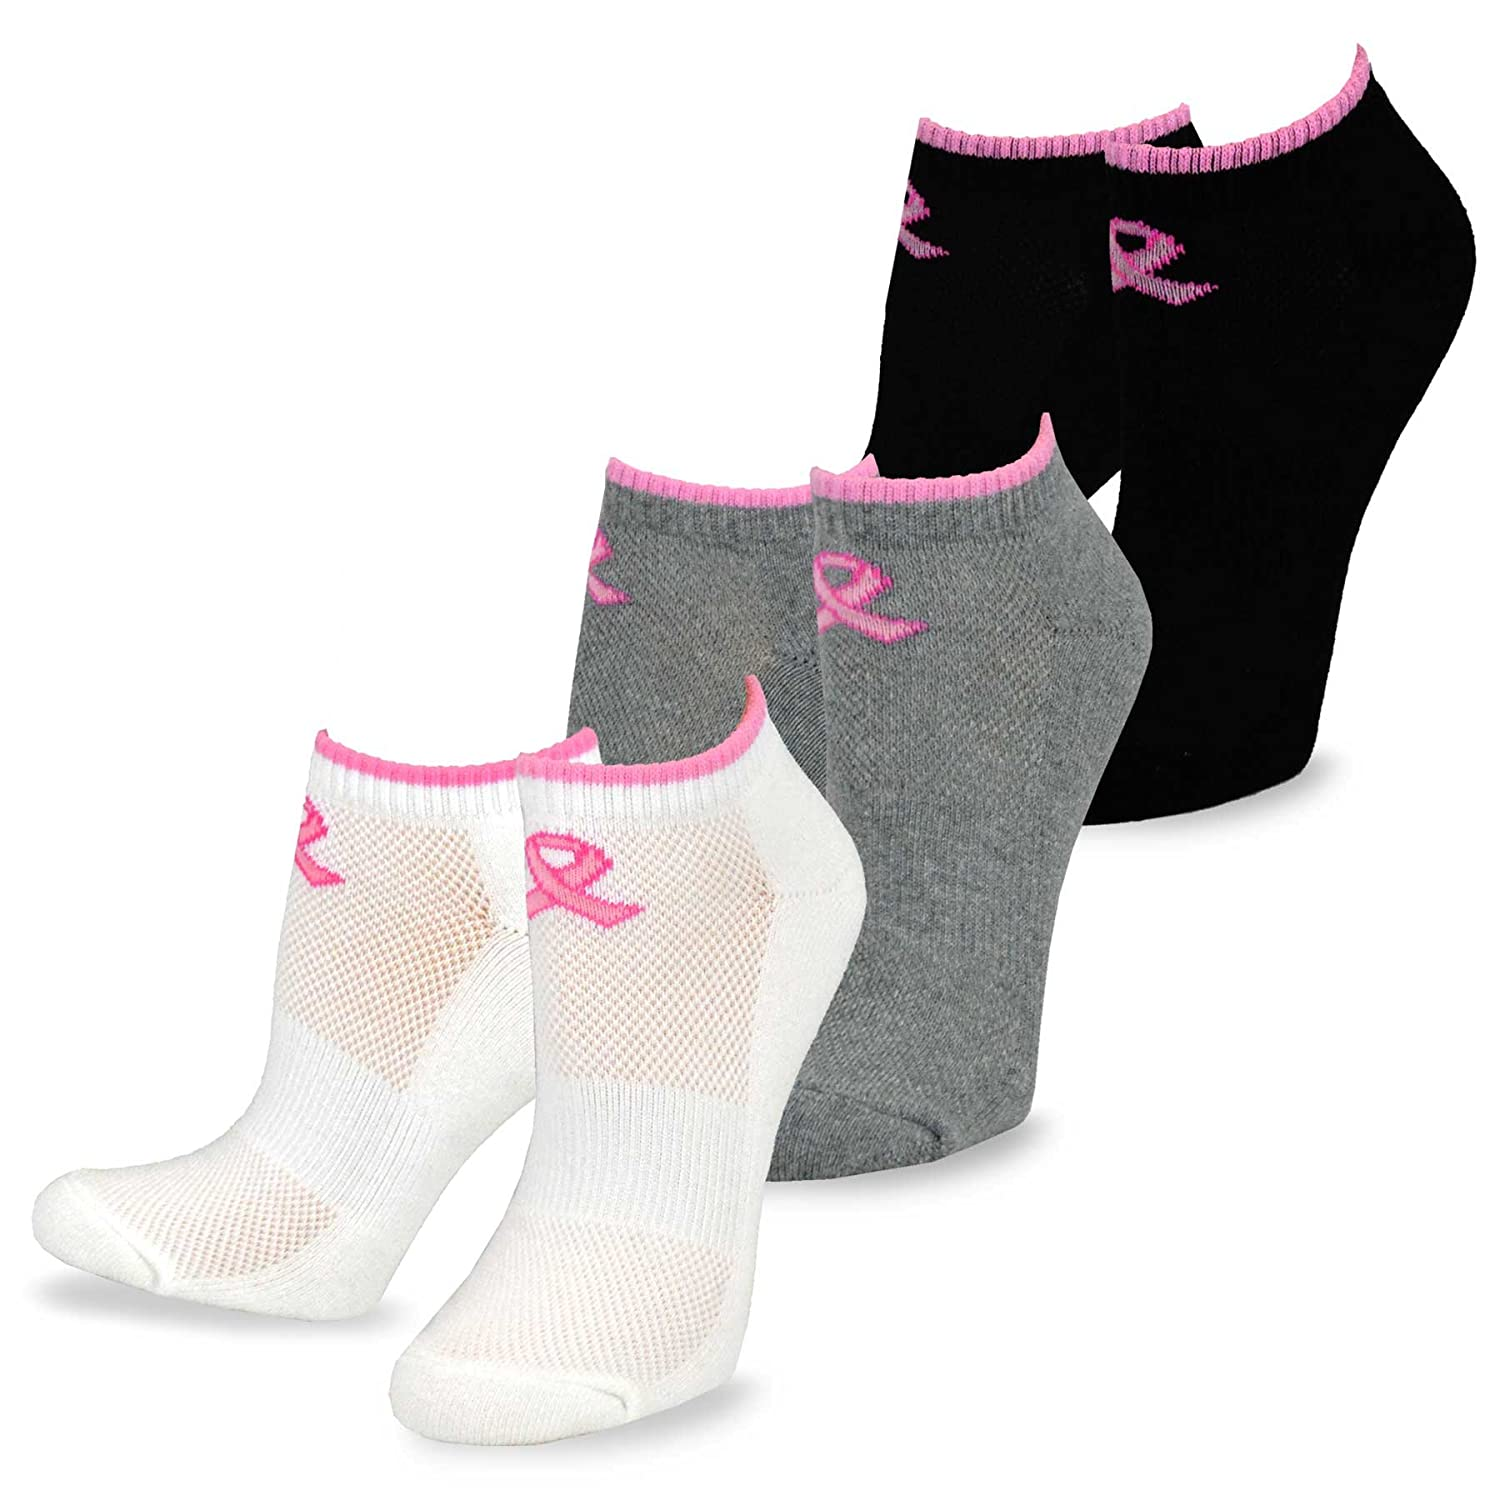 TeeHee Pink Ribbon Breast Cancer Awareness No Show Cushion Socks for Women 3-Pair Pack Soxnet Inc S/11898-3C01